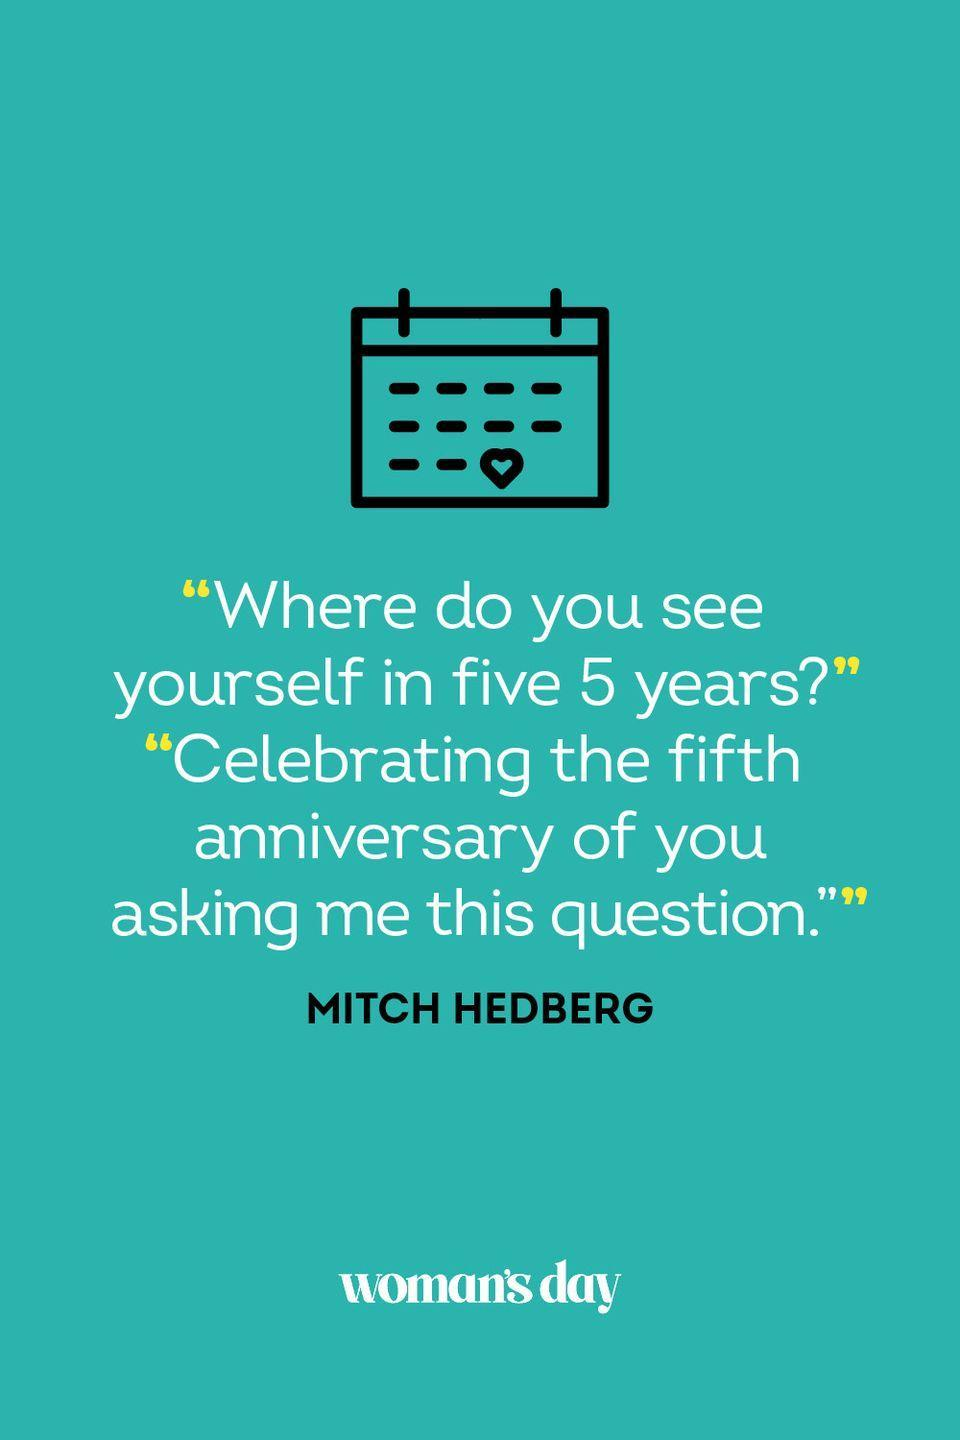 """<p>""""Where do you see yourself in five 5 years?"""" </p><p>""""Celebrating the fifth anniversary of you asking me this question.""""</p>"""